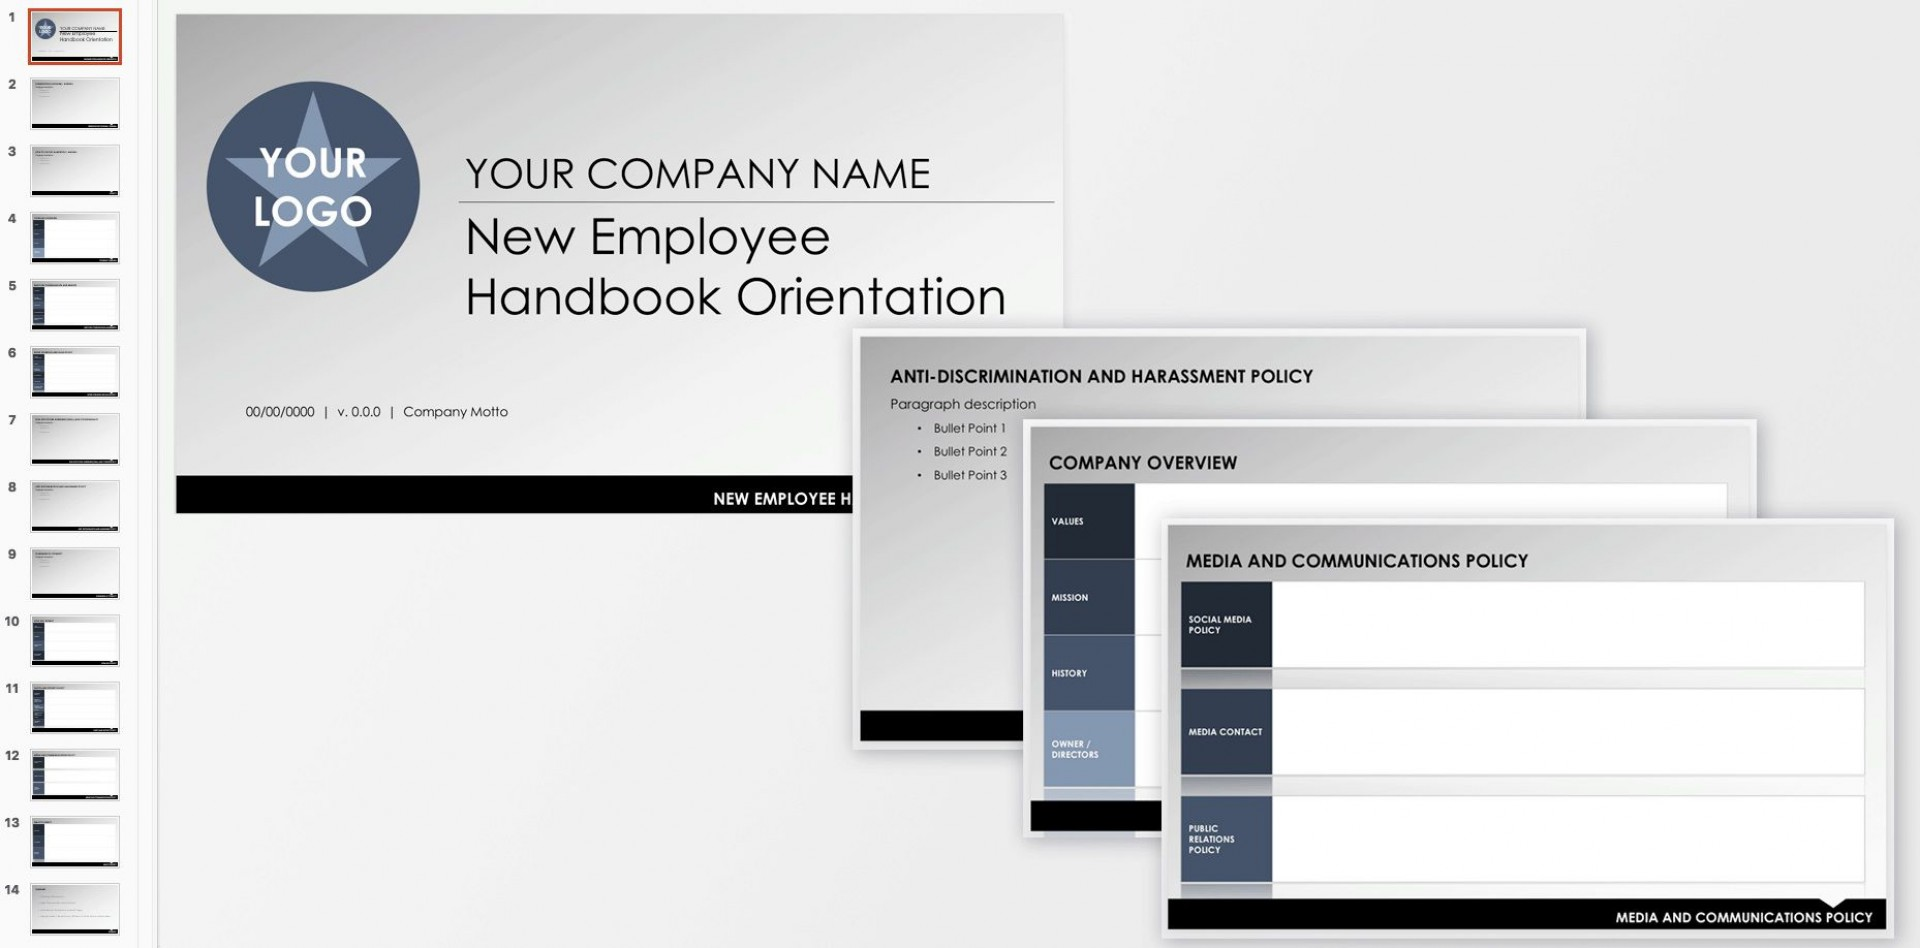 007 Sensational Free Employee Handbook Template Picture  Templates Sample Canada Philippine In Singapore1920